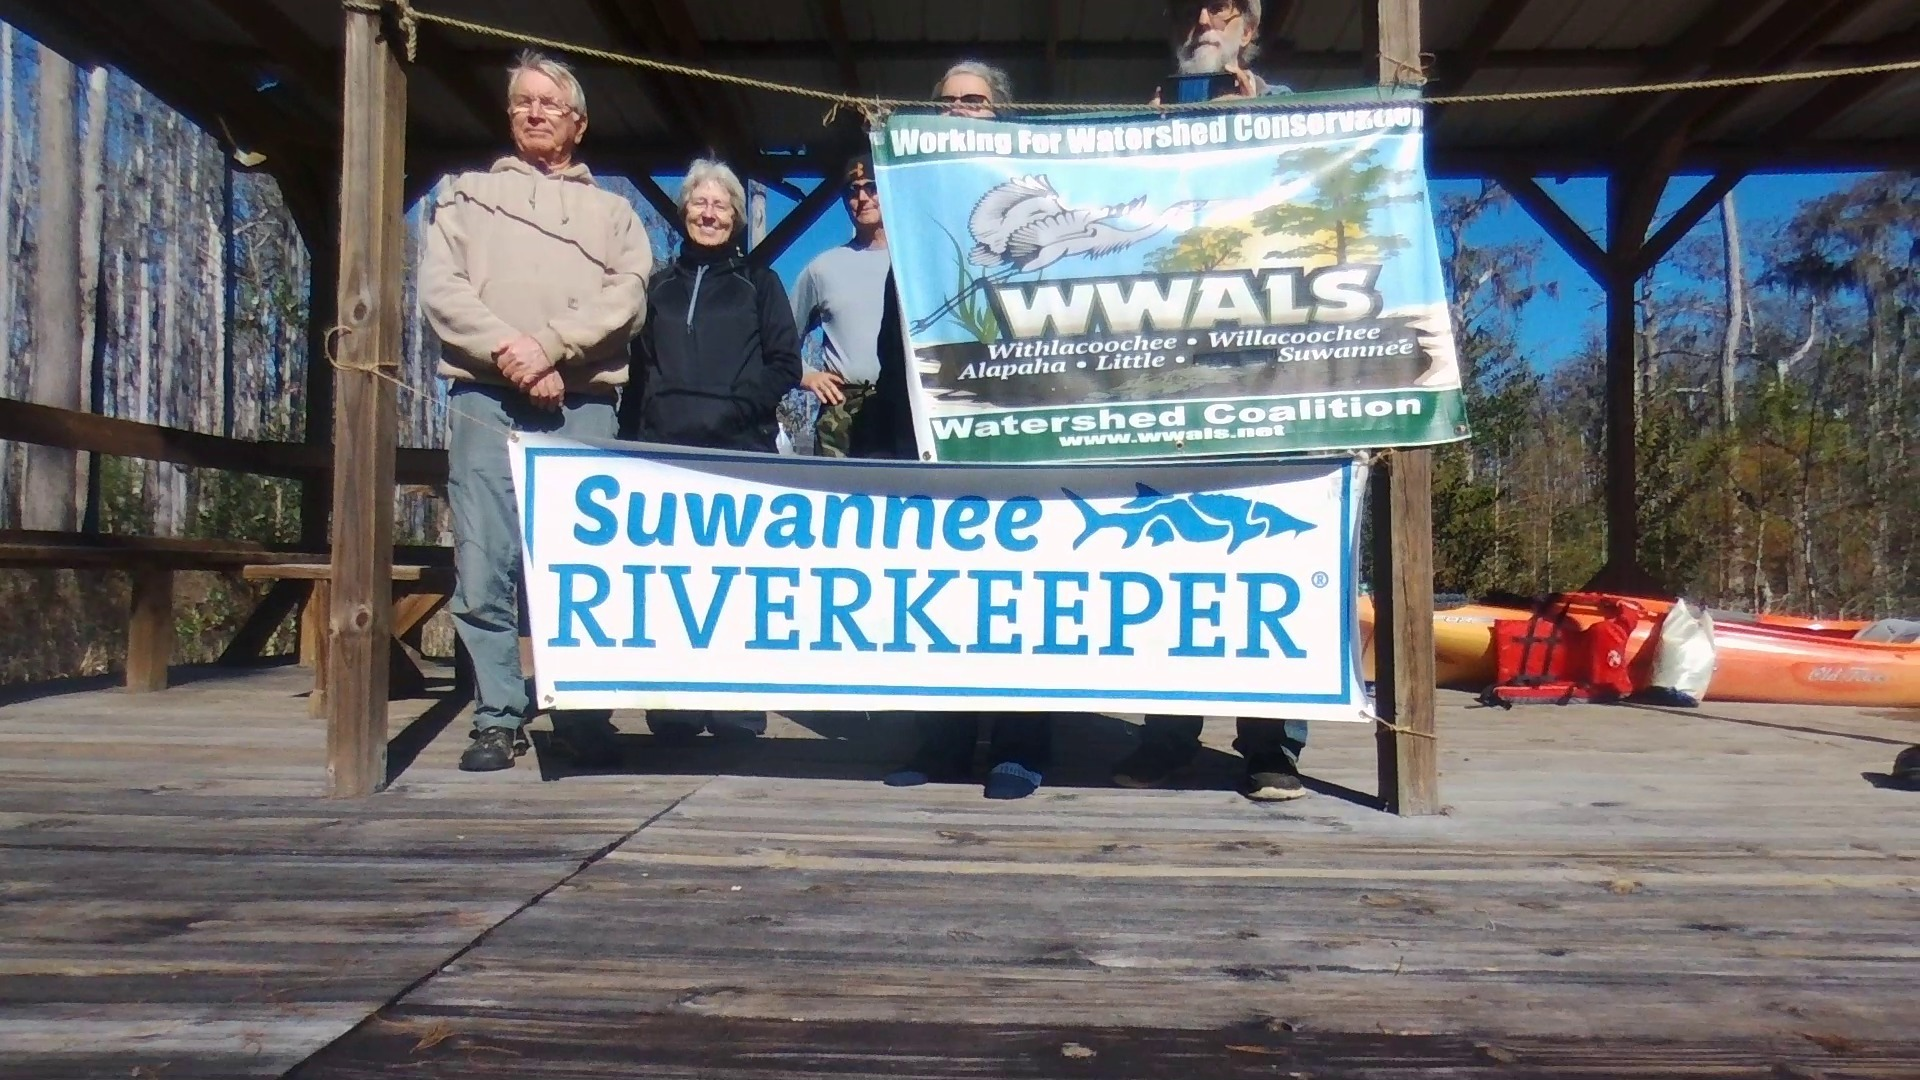 1920x1080 Go Higher, 30.861228, -82.323492, Drone, in One alligator, some turtles, many birds: cold and clear Okefenokee Outing, by John S. Quarterman, for WWALS.net, 10 December 2017